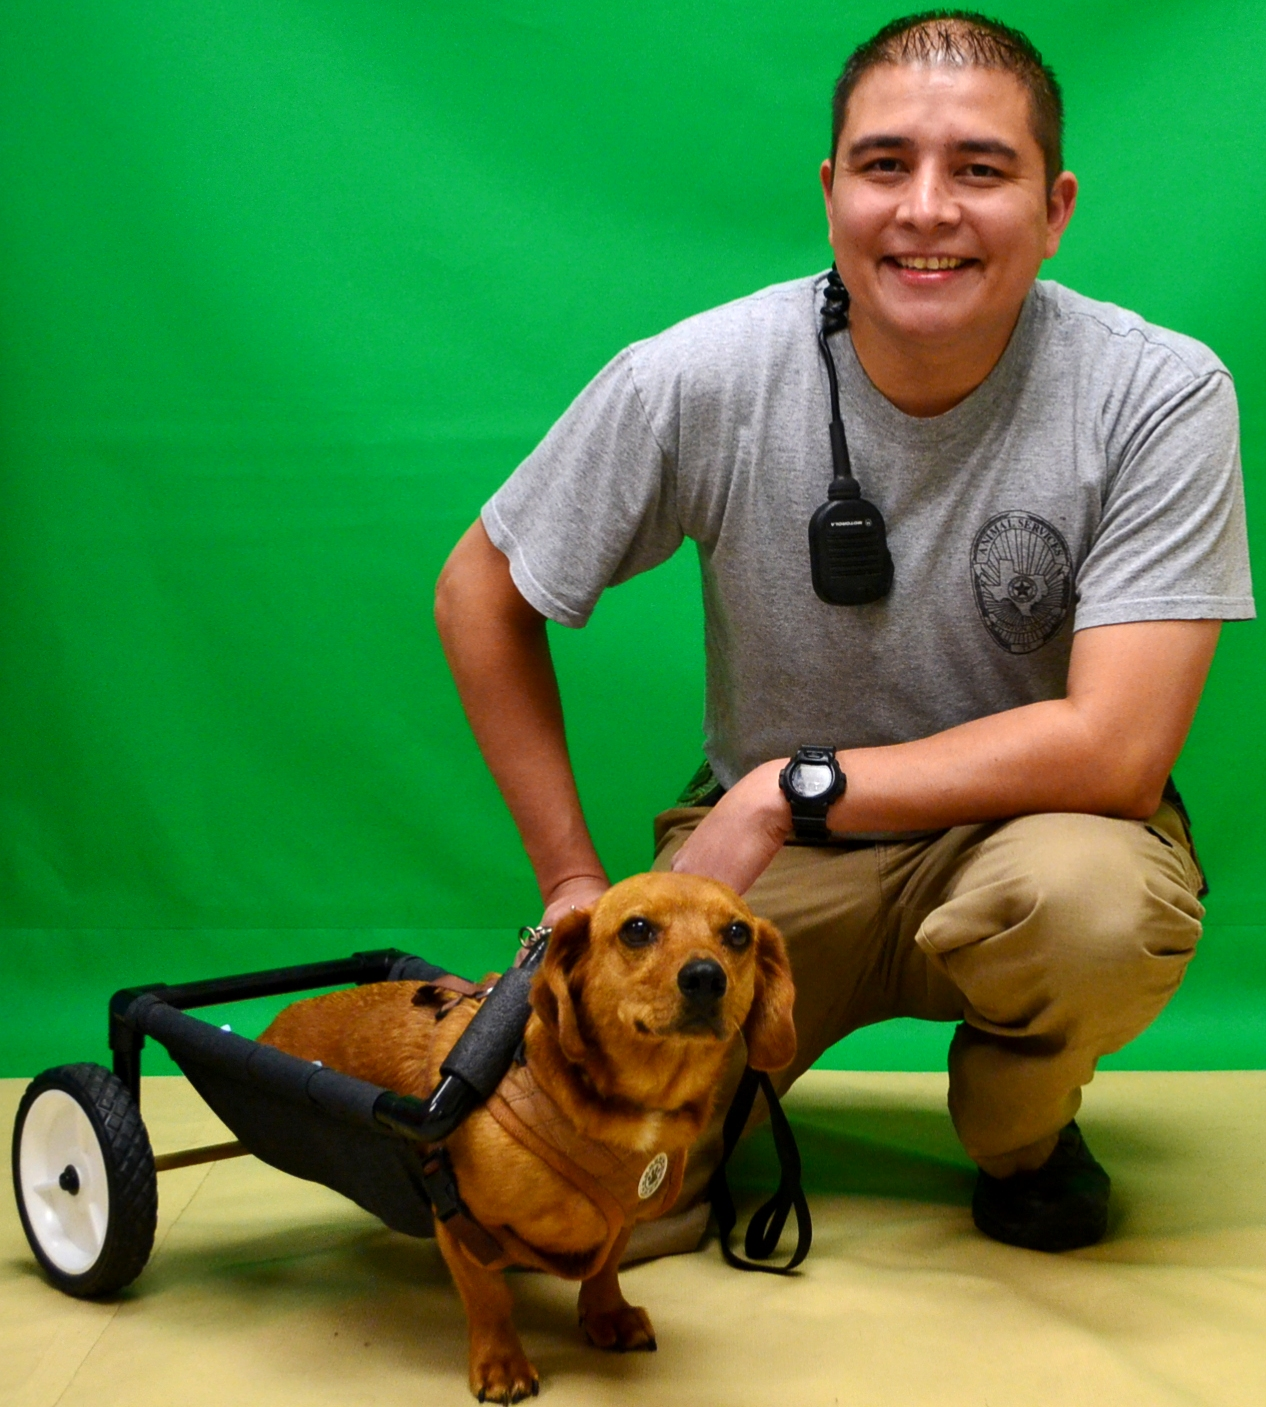 Urban Rodriguez posing with William the Dachshund in his cart